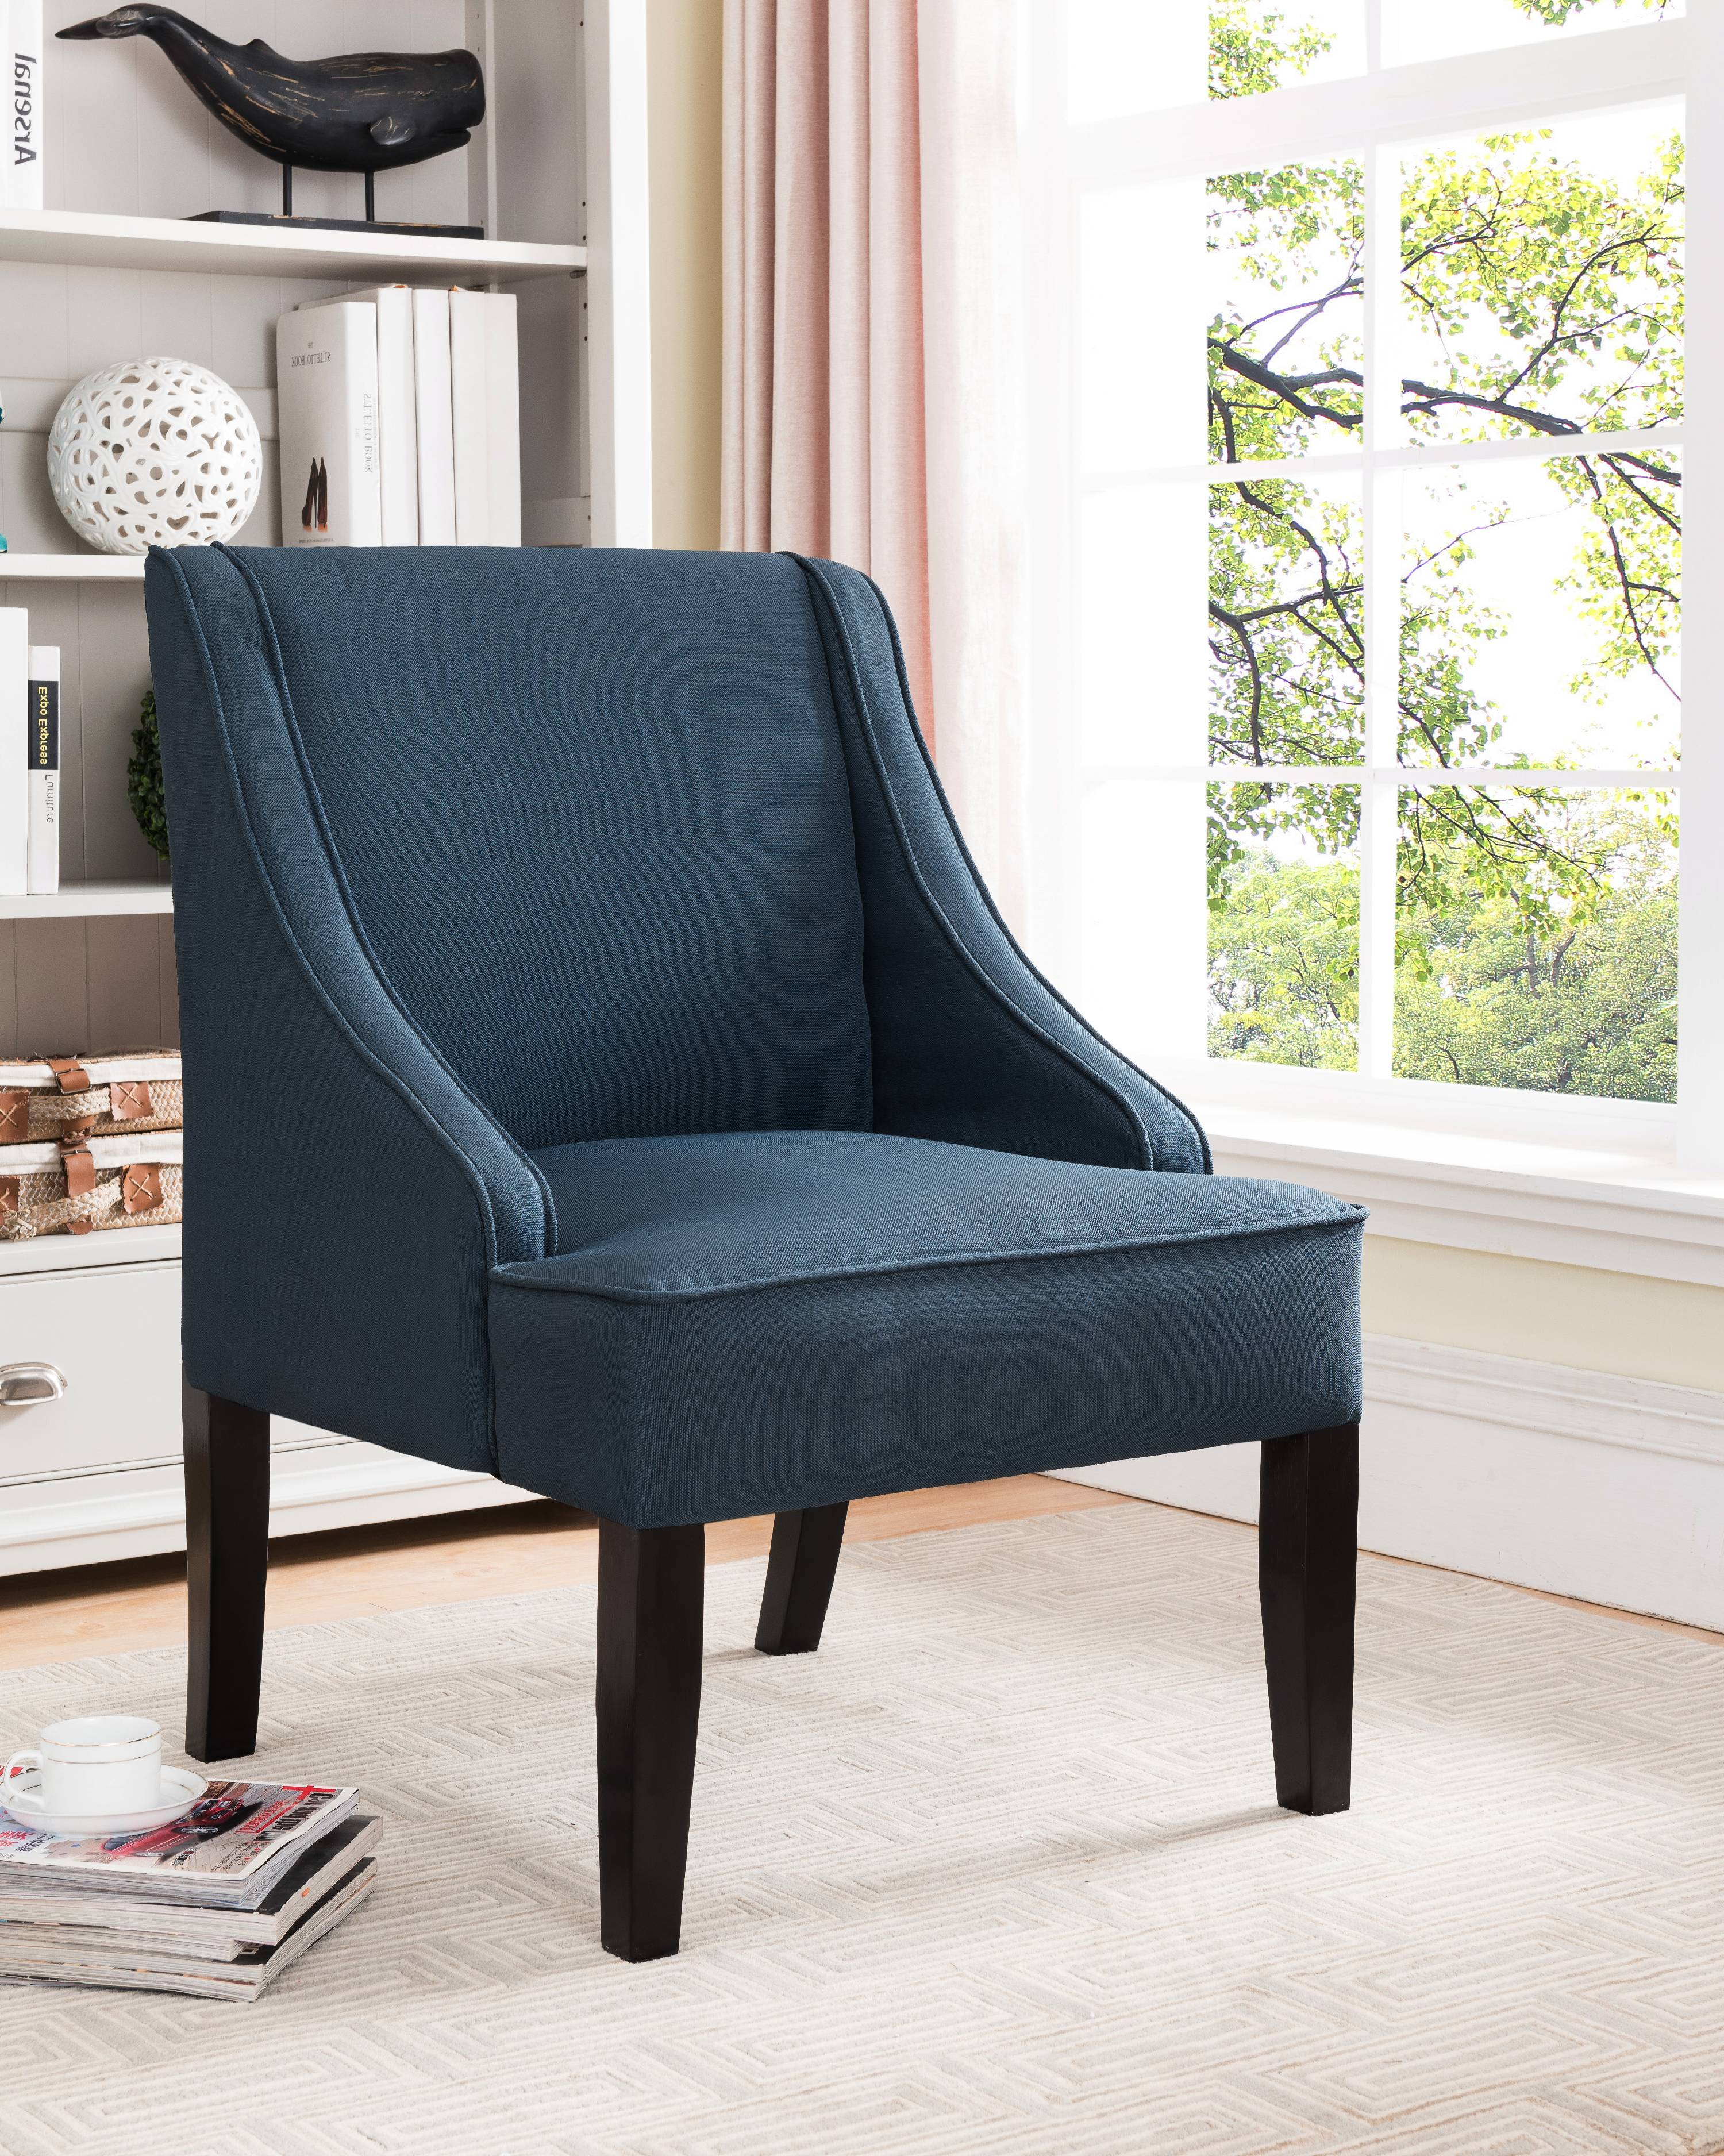 Noelle Dark Blue U0026 Black Upholstered Fabric Oversized Accent Chair With  Wood Frame U0026 Legs